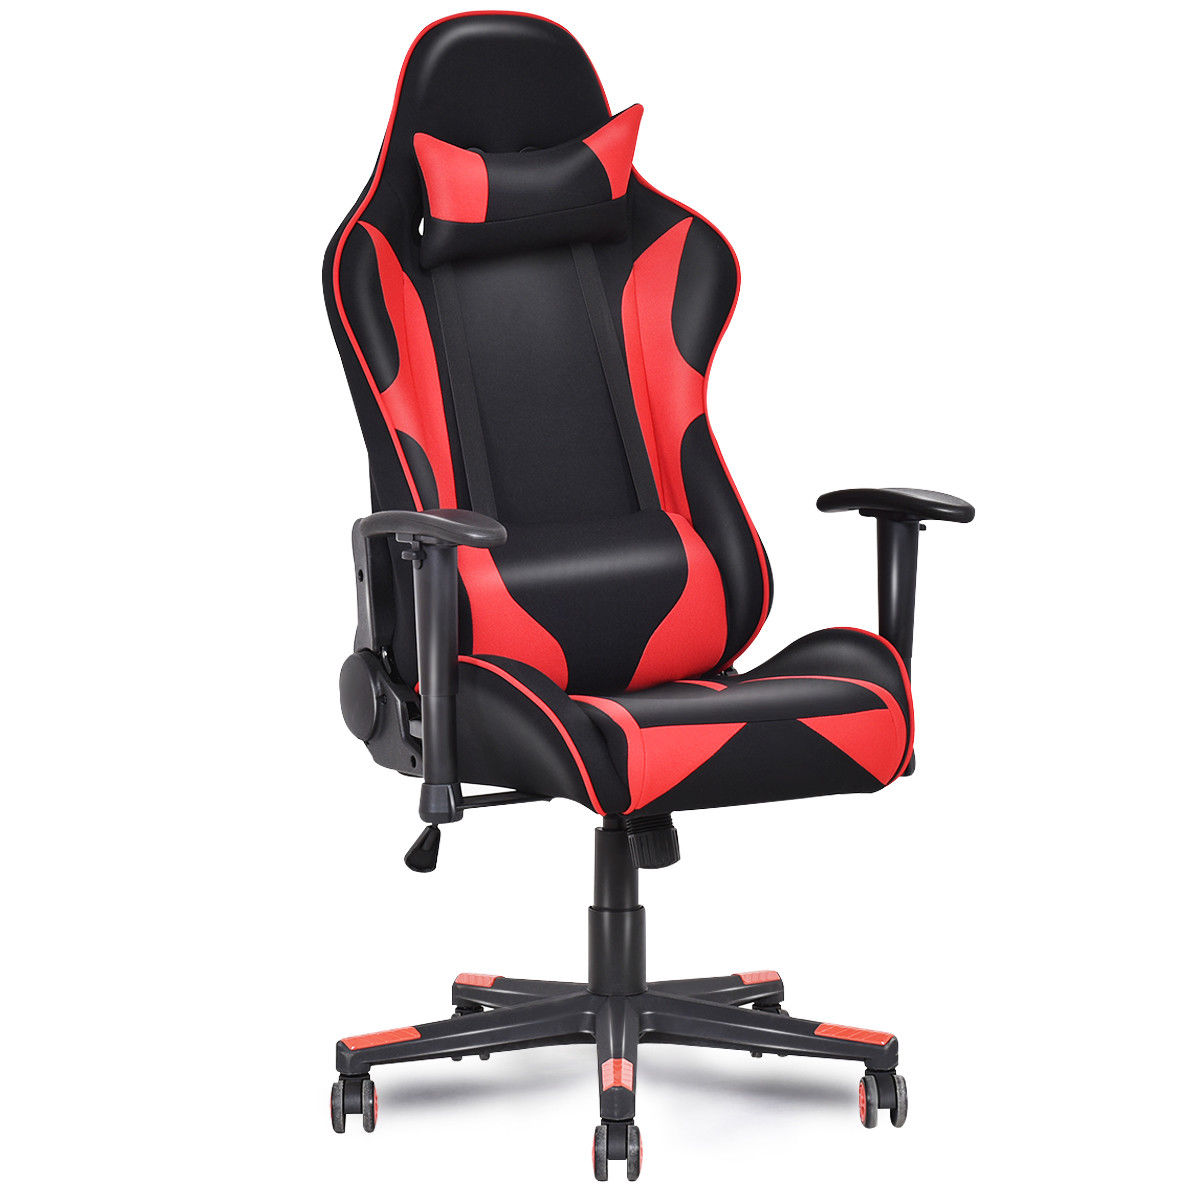 Reclining Gaming Chair Ergonomic Walmart Hot Sale Giantex Racing Style High Back Recliner Modern Mesh Swivel Computer Office Furniture Hw55608